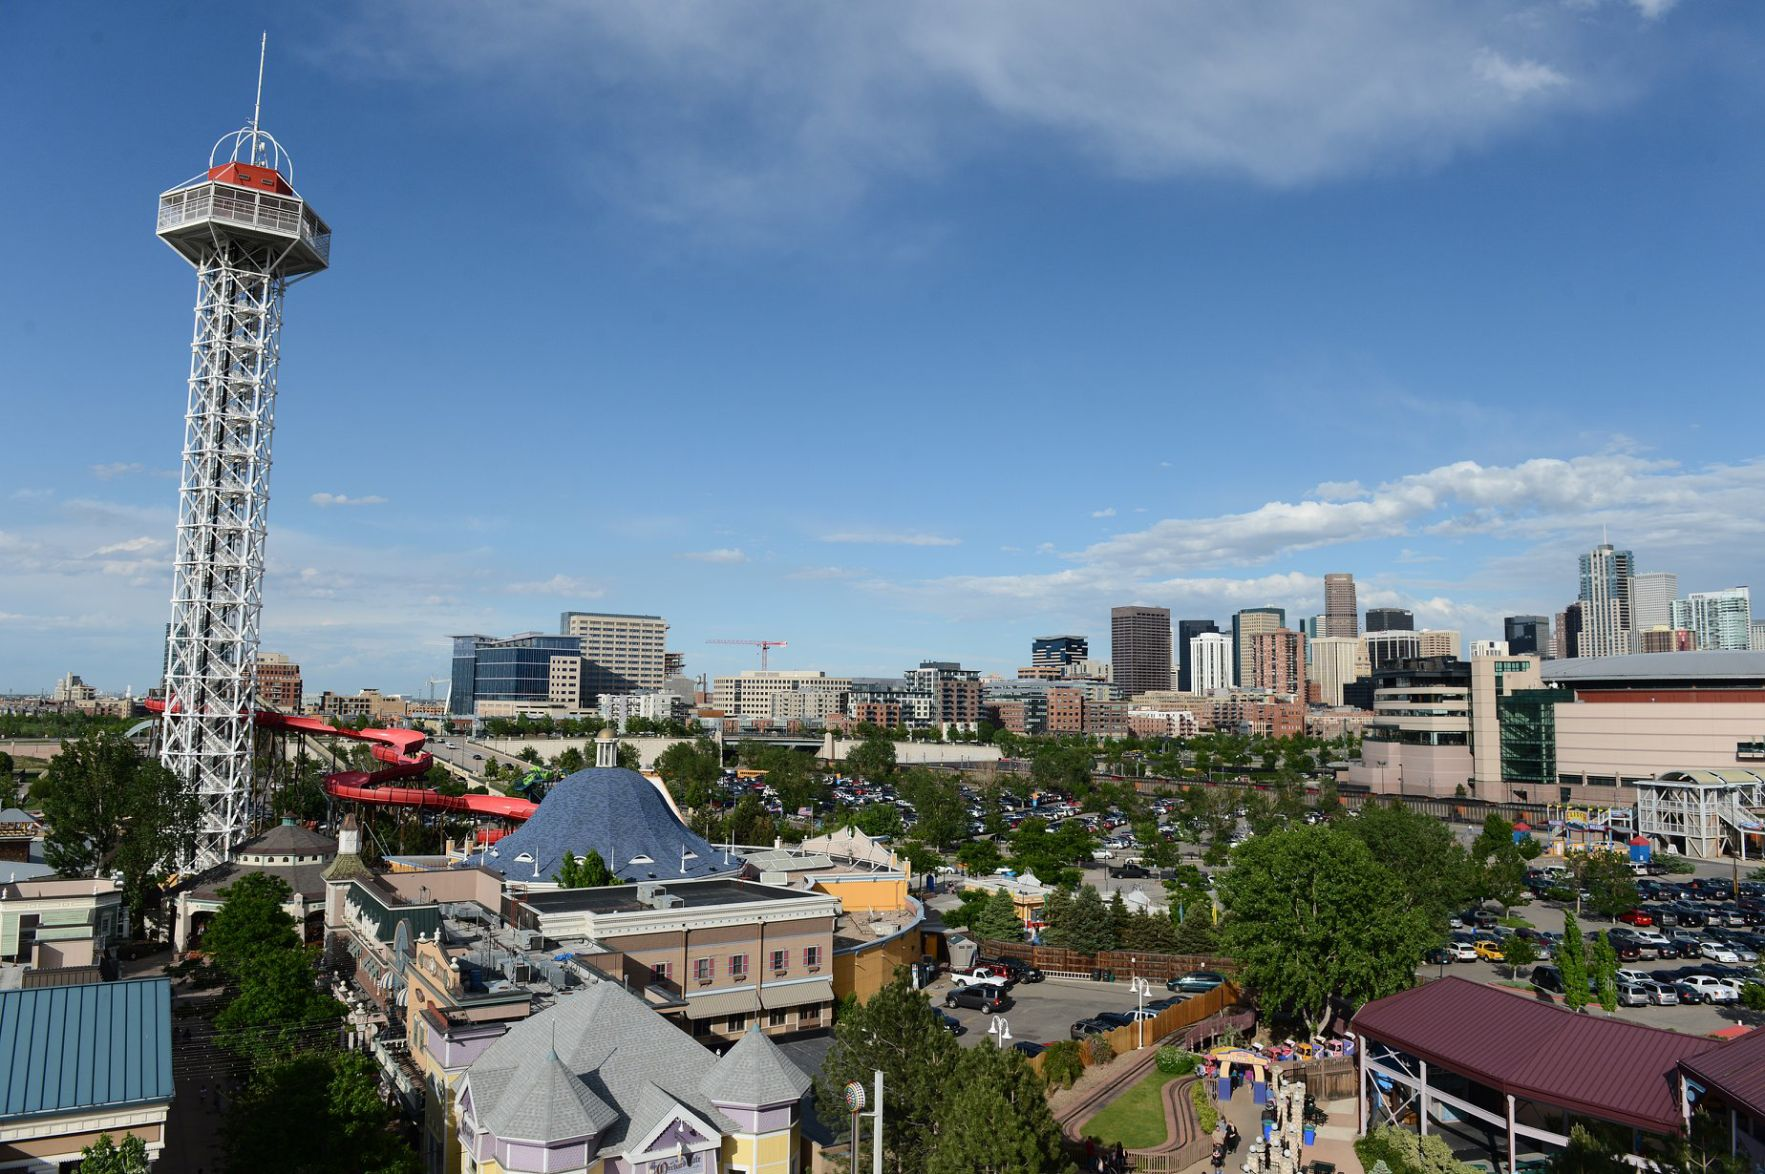 Elitch Gardens Opens This Weekend In Denver